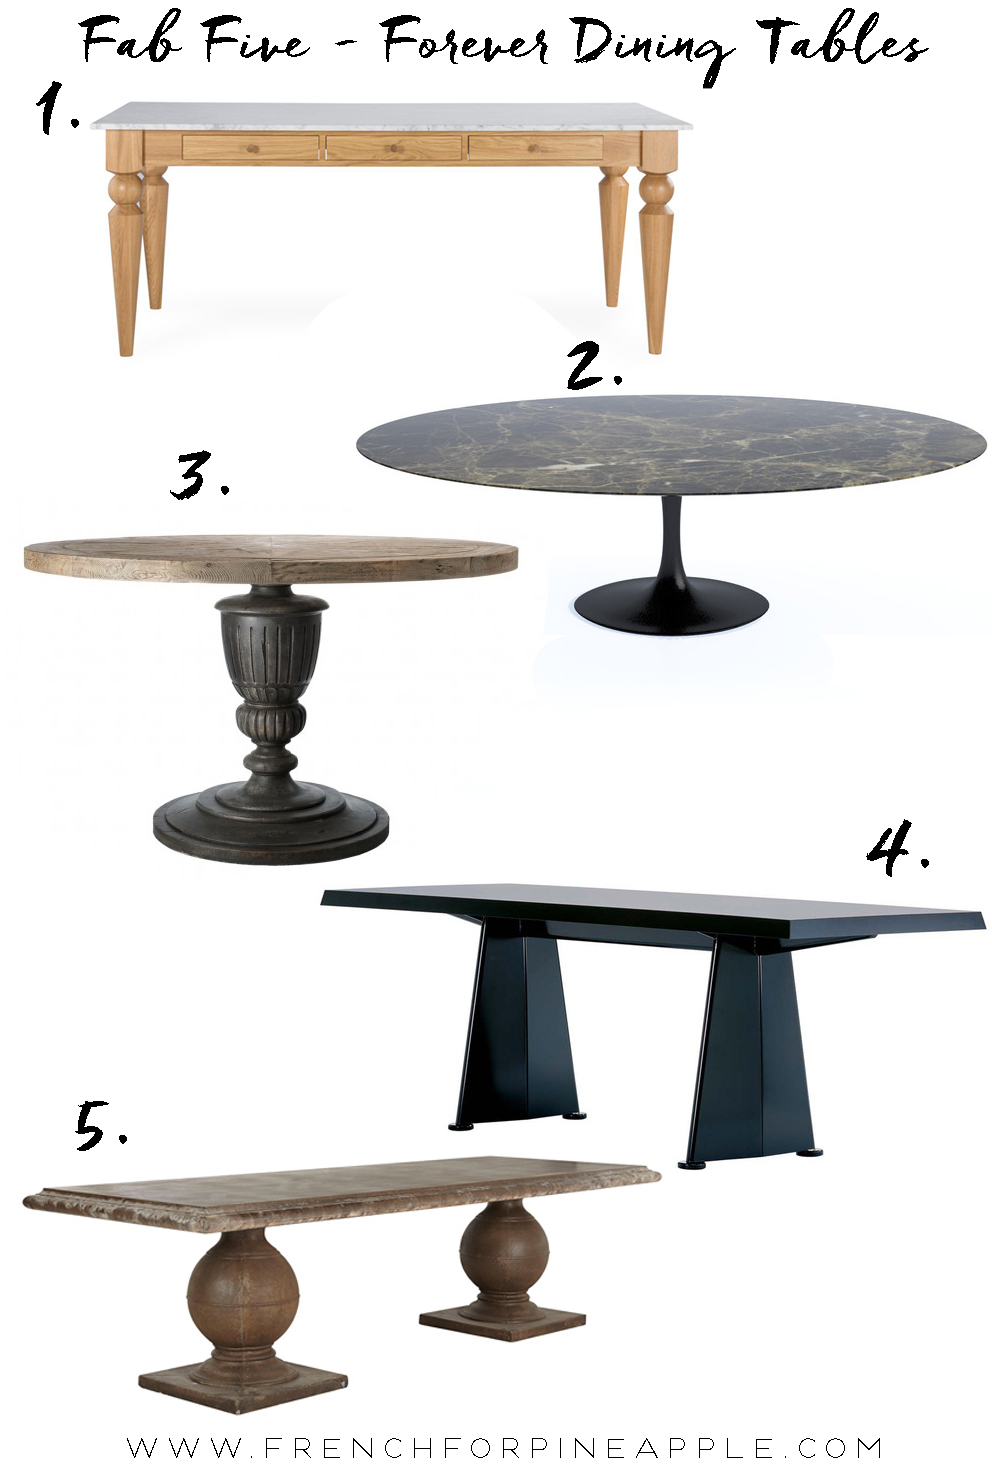 French For Pineapple Blog - Fab Five Forever Dining Tables. The other day I was pondering 'forever' pieces for the home. Things you buy at a certain point in your life, that you're likely to keep, even hand down to your children (or, um, pets). I couldn't think of many really - we live in such a disposable world these days.  Sofas? Well they get knackered eventually and need to be replaced or at least reupholstered, though it's often cheaper to replace them sadly.  Beds? Maybe?  A beautiful sideboard? Perhaps...  Dining Table? Definitely!  When we have the funds to create our forever kitchen (so in like twenty years!), we'll need a forever dining table to go in it, of course. Though given that time frame, maybe the forever dining table should come first.